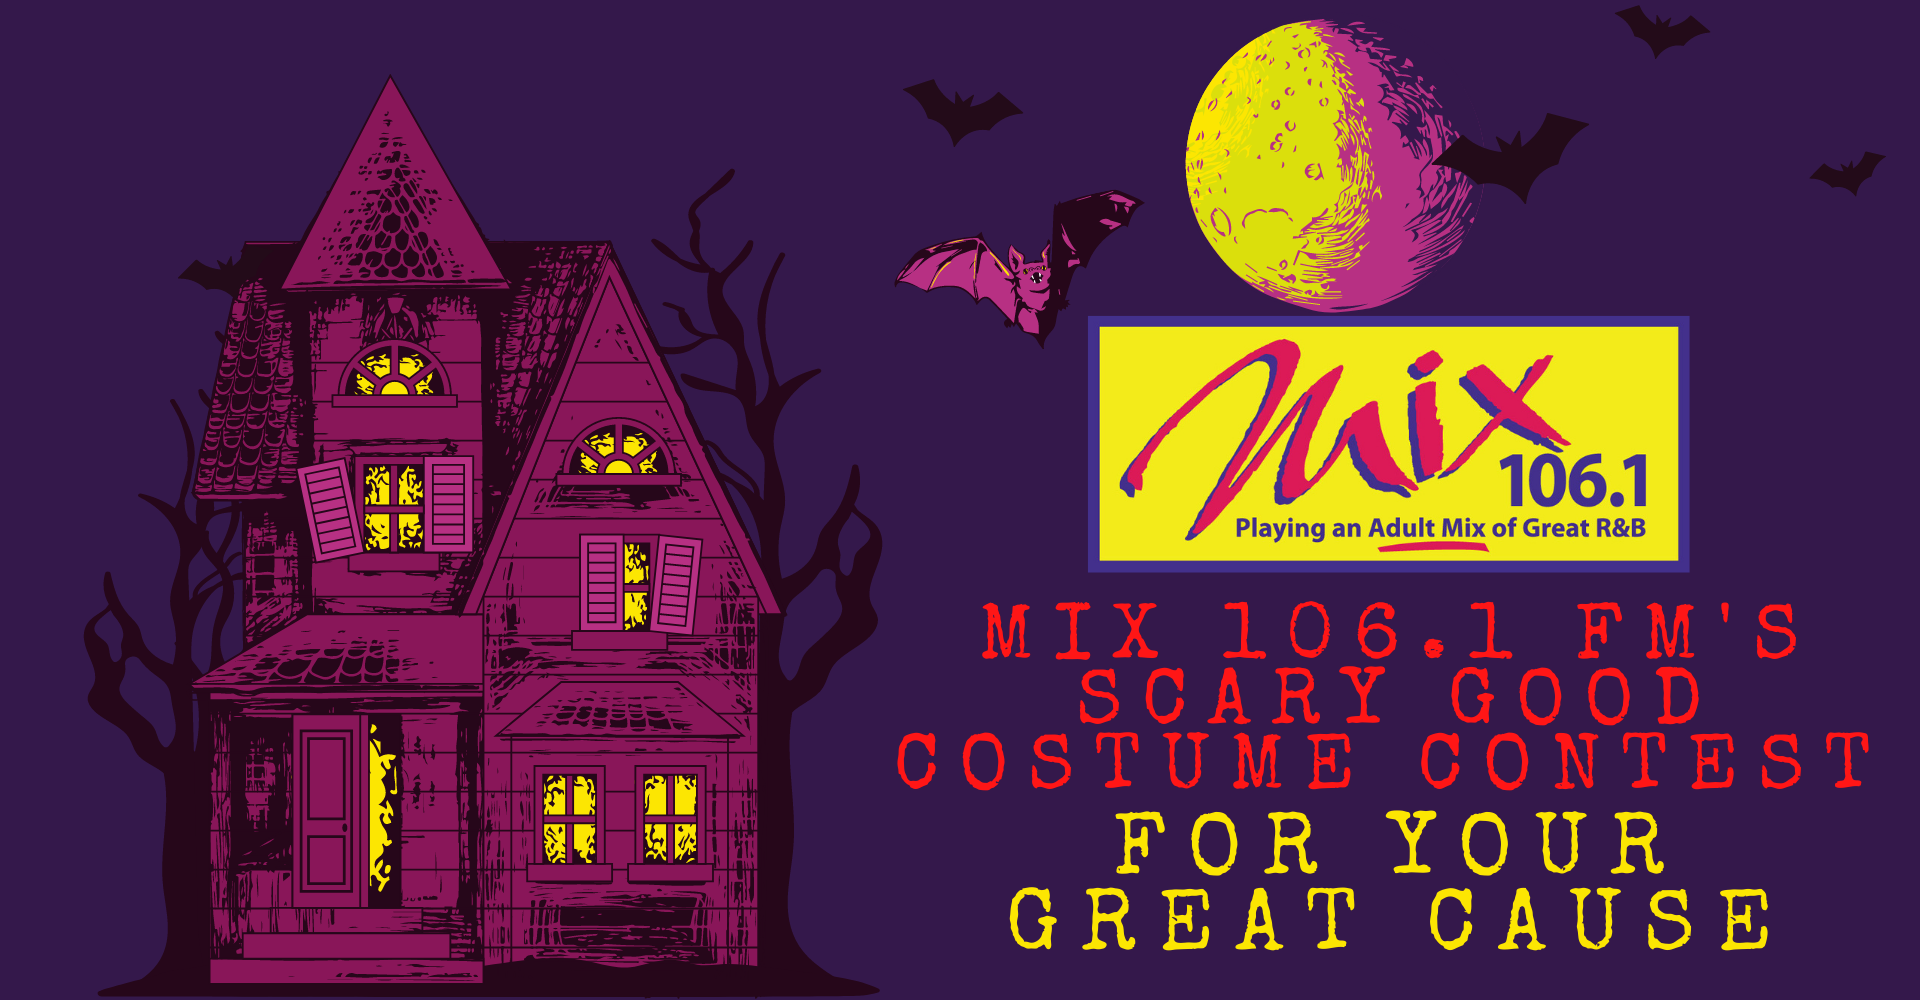 Mix 106.1 FM's Scary Good Costume Contest